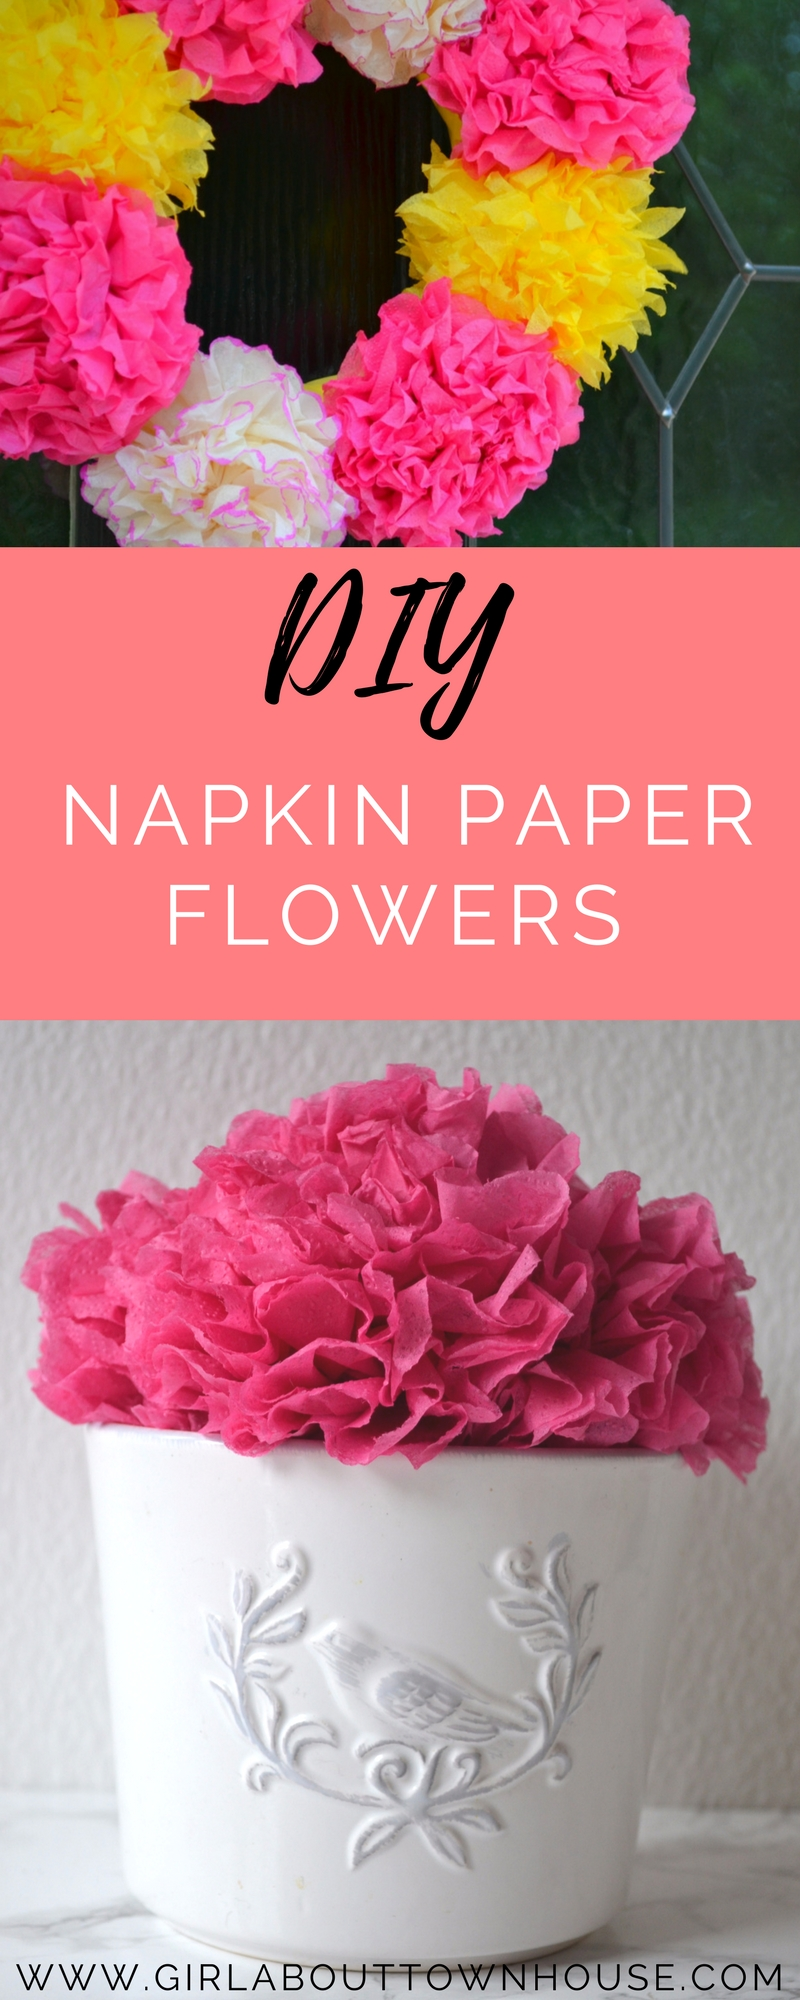 How to make paper flowers the easy way! Forget tissue paper and crepe paper - all you need is a napkin for this super simple tutorial. The perfect DIY for making wreaths and garlands for weddings, parties, celebrations or just to pretty up your place.